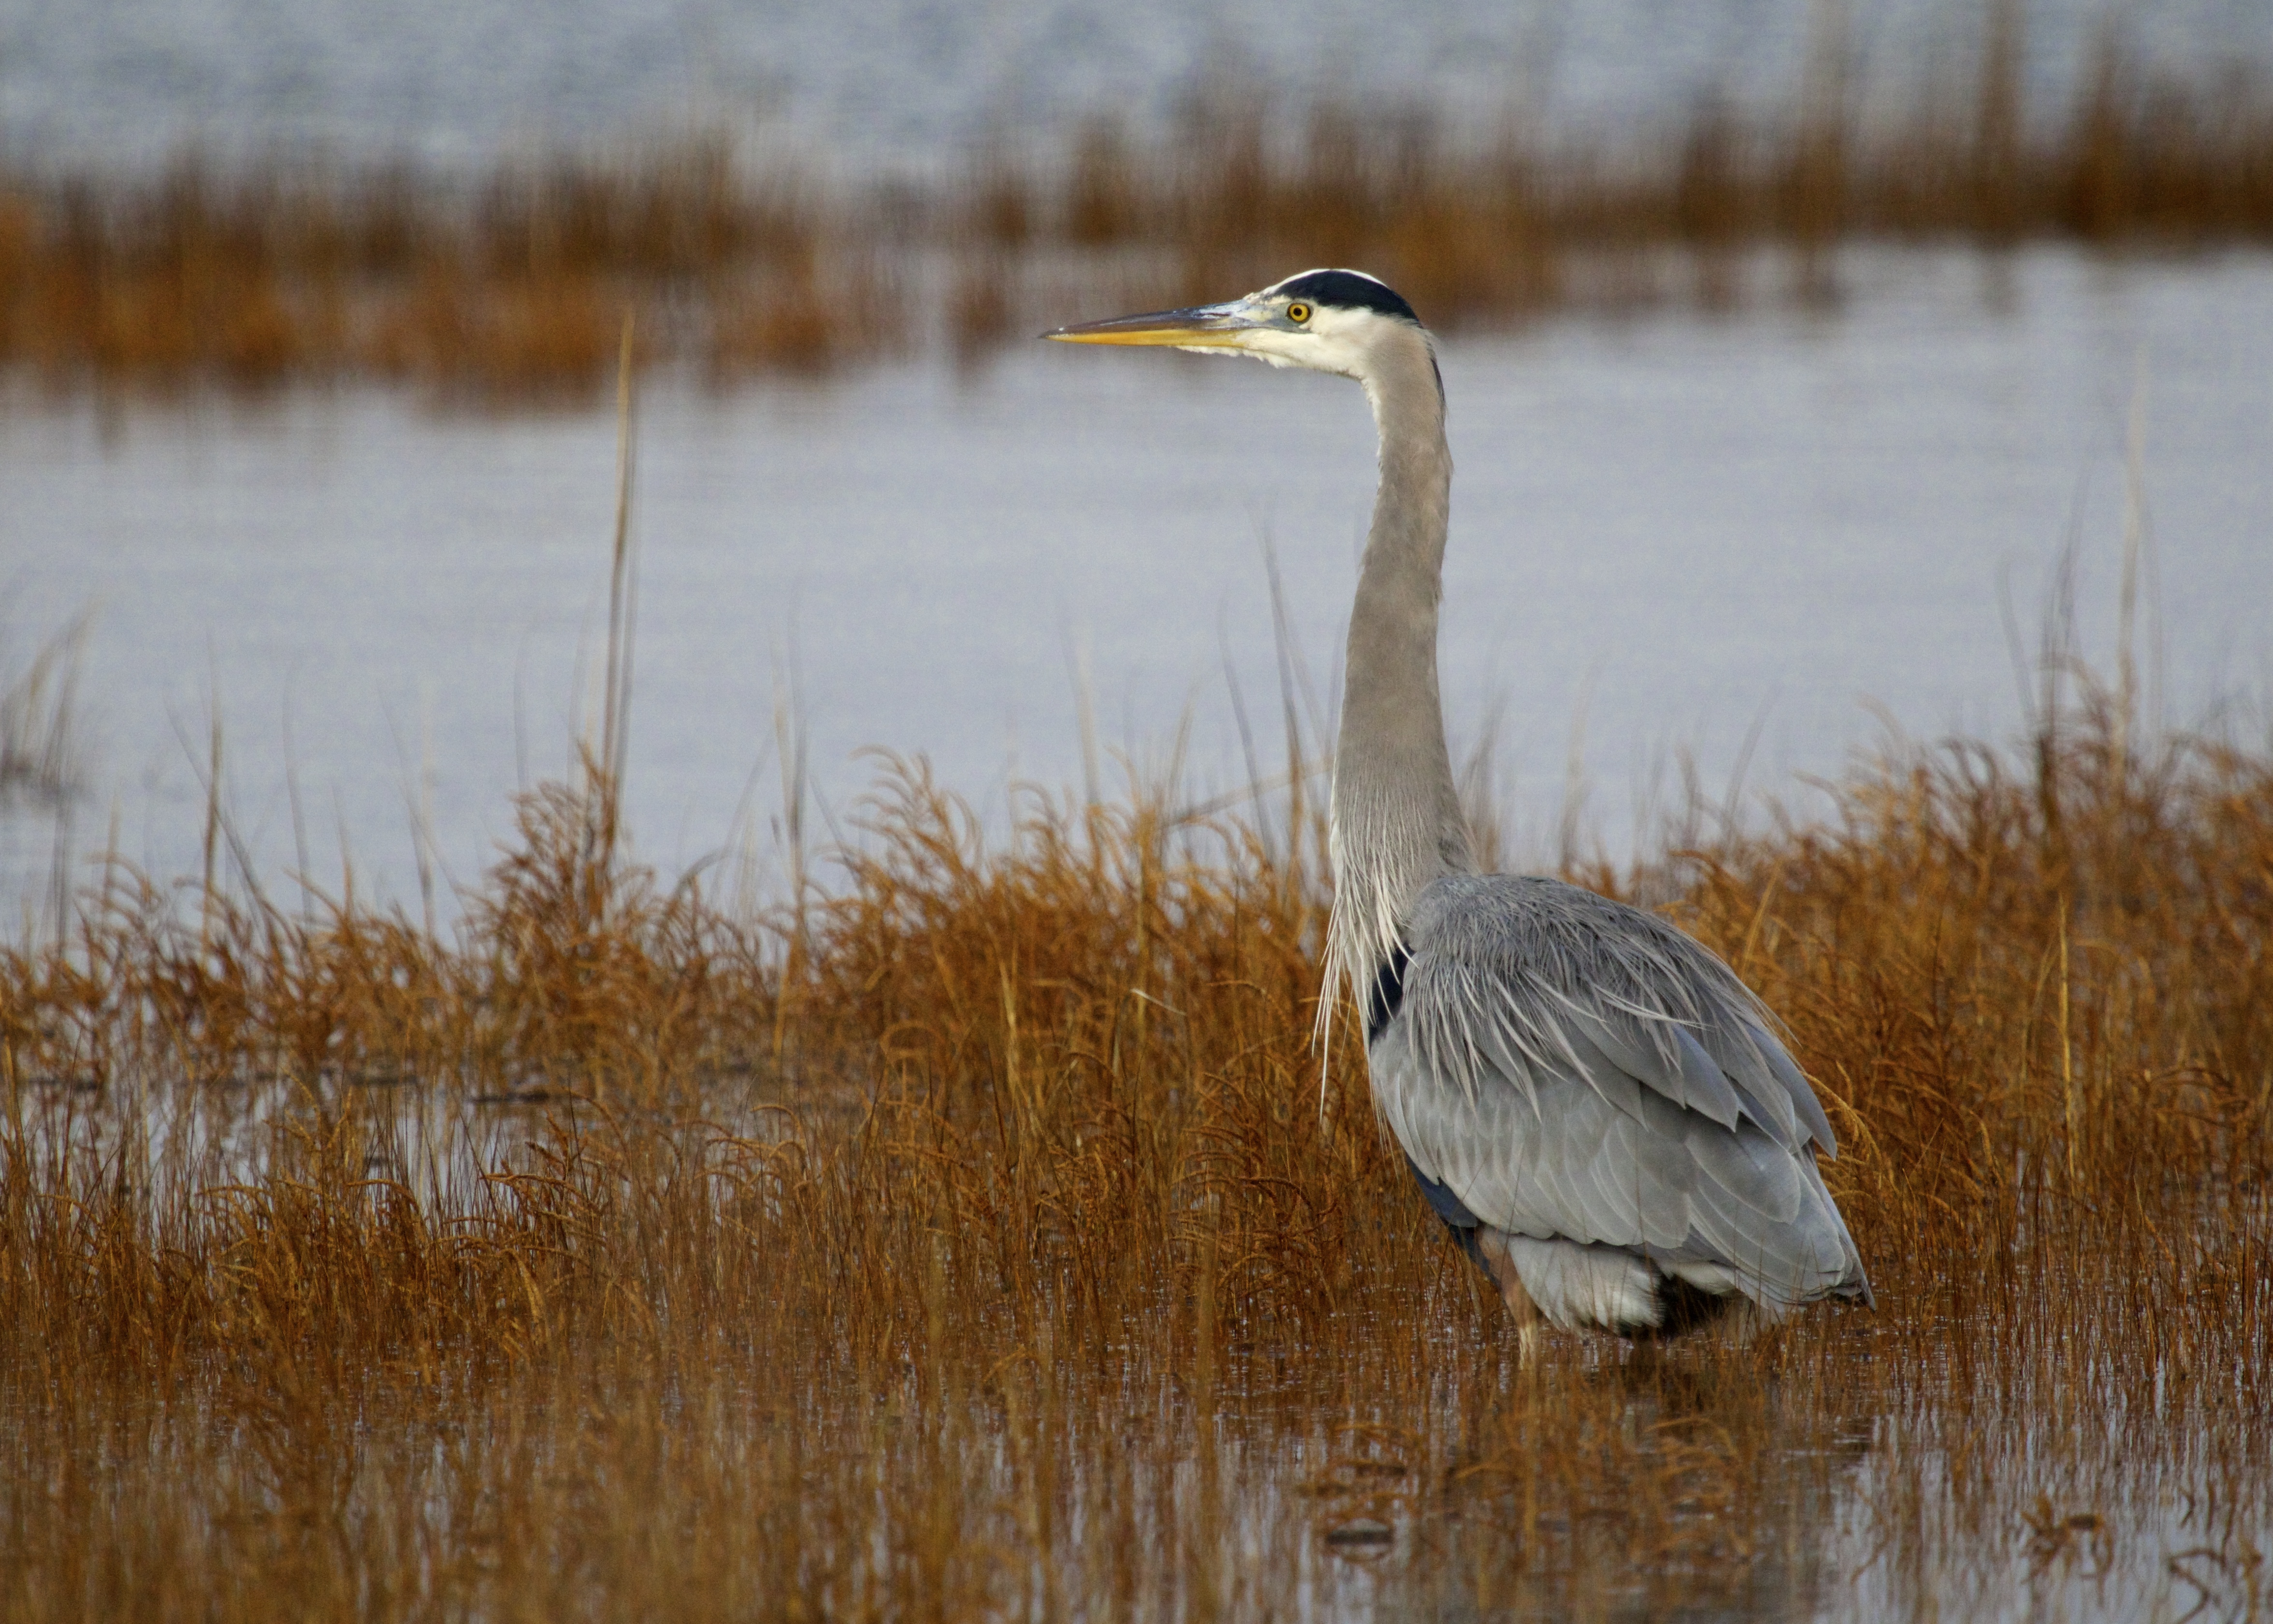 I feel like it's been a while since I've gotten close enough to a Great Blue Heron for a photo. This one was on Captree Island, 12/15/13.